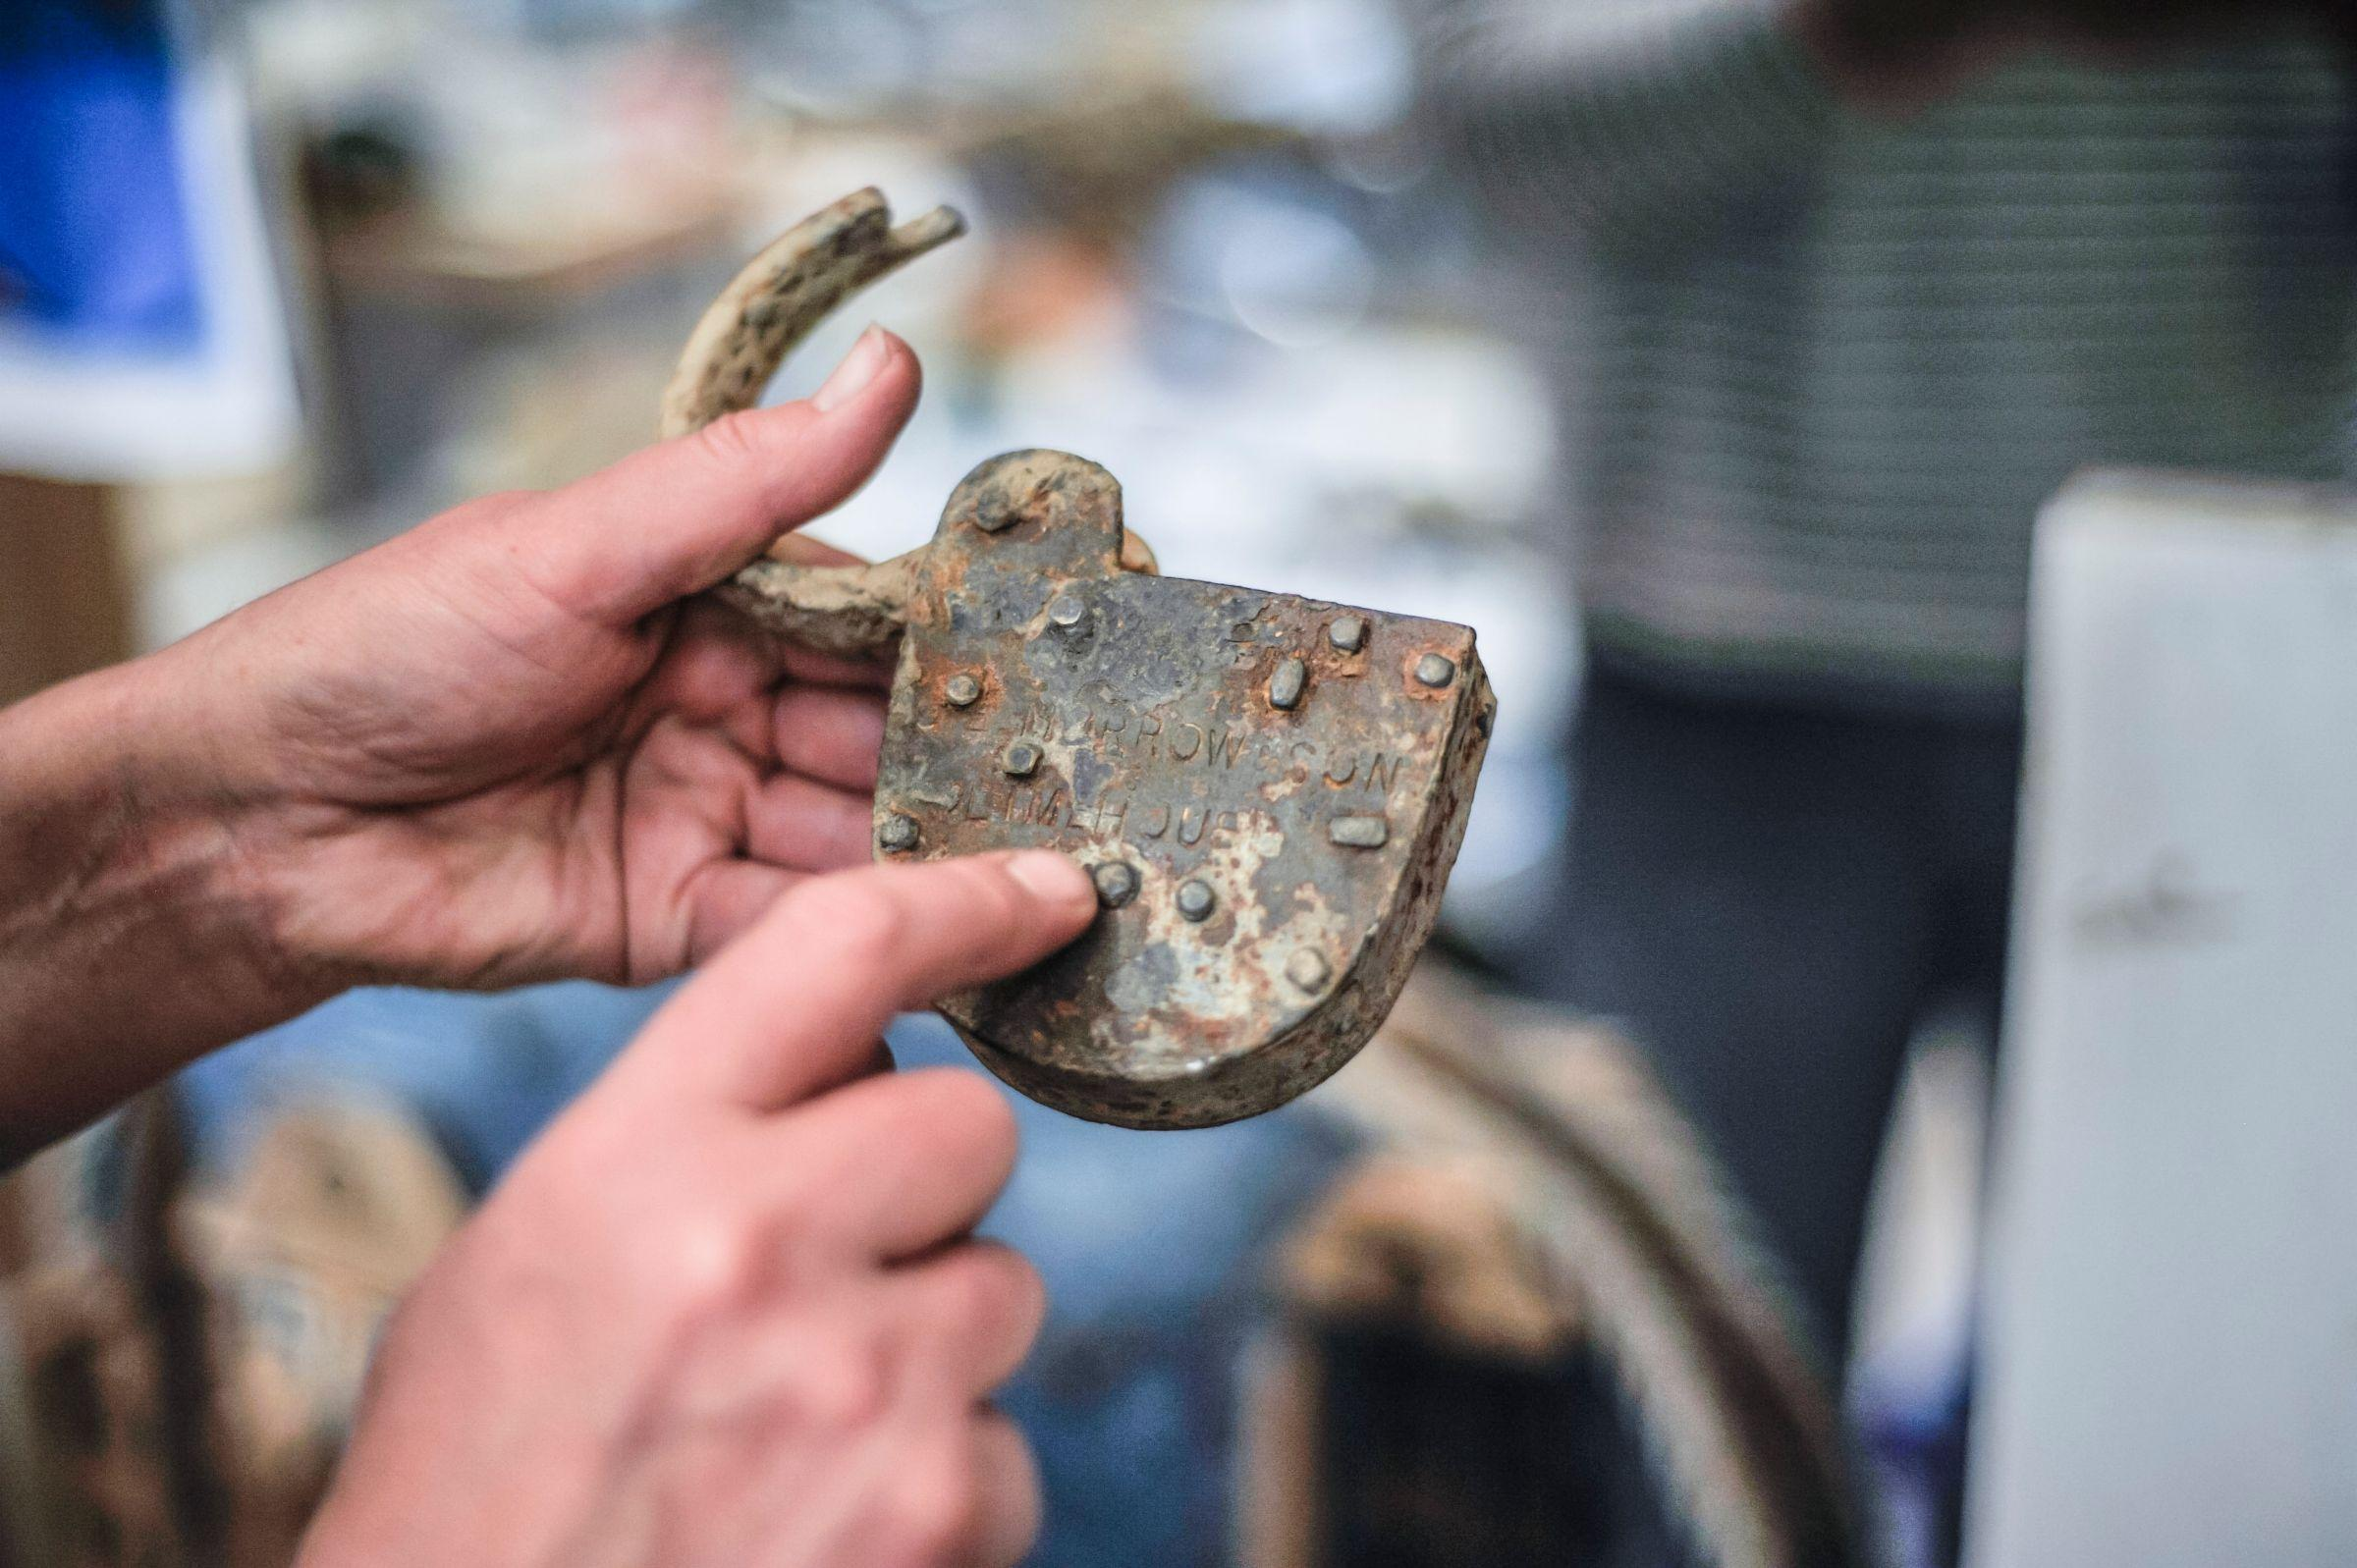 A man holding a rusted padlock